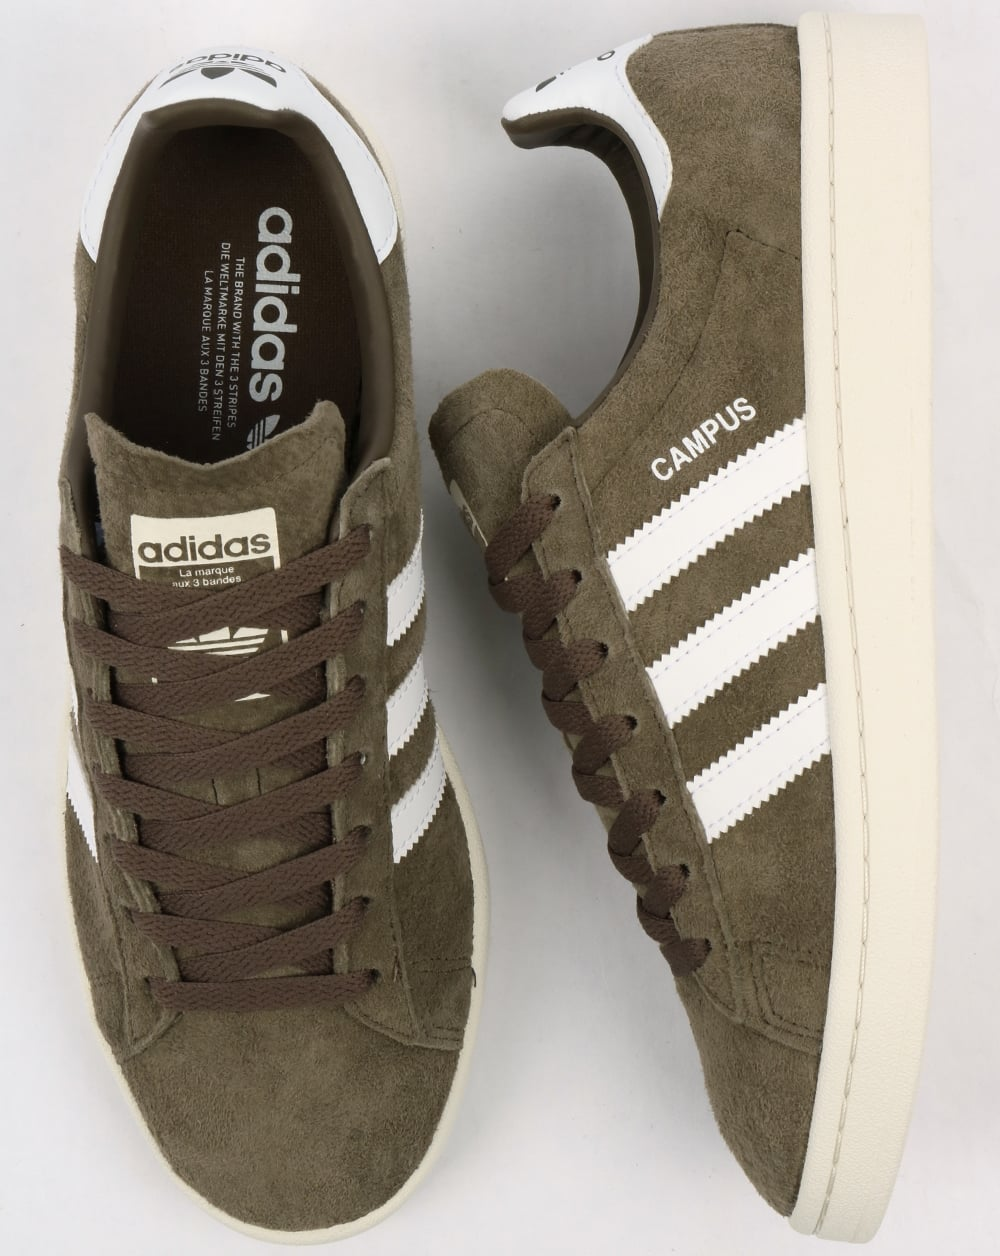 adidas originals campus trainers in khaki